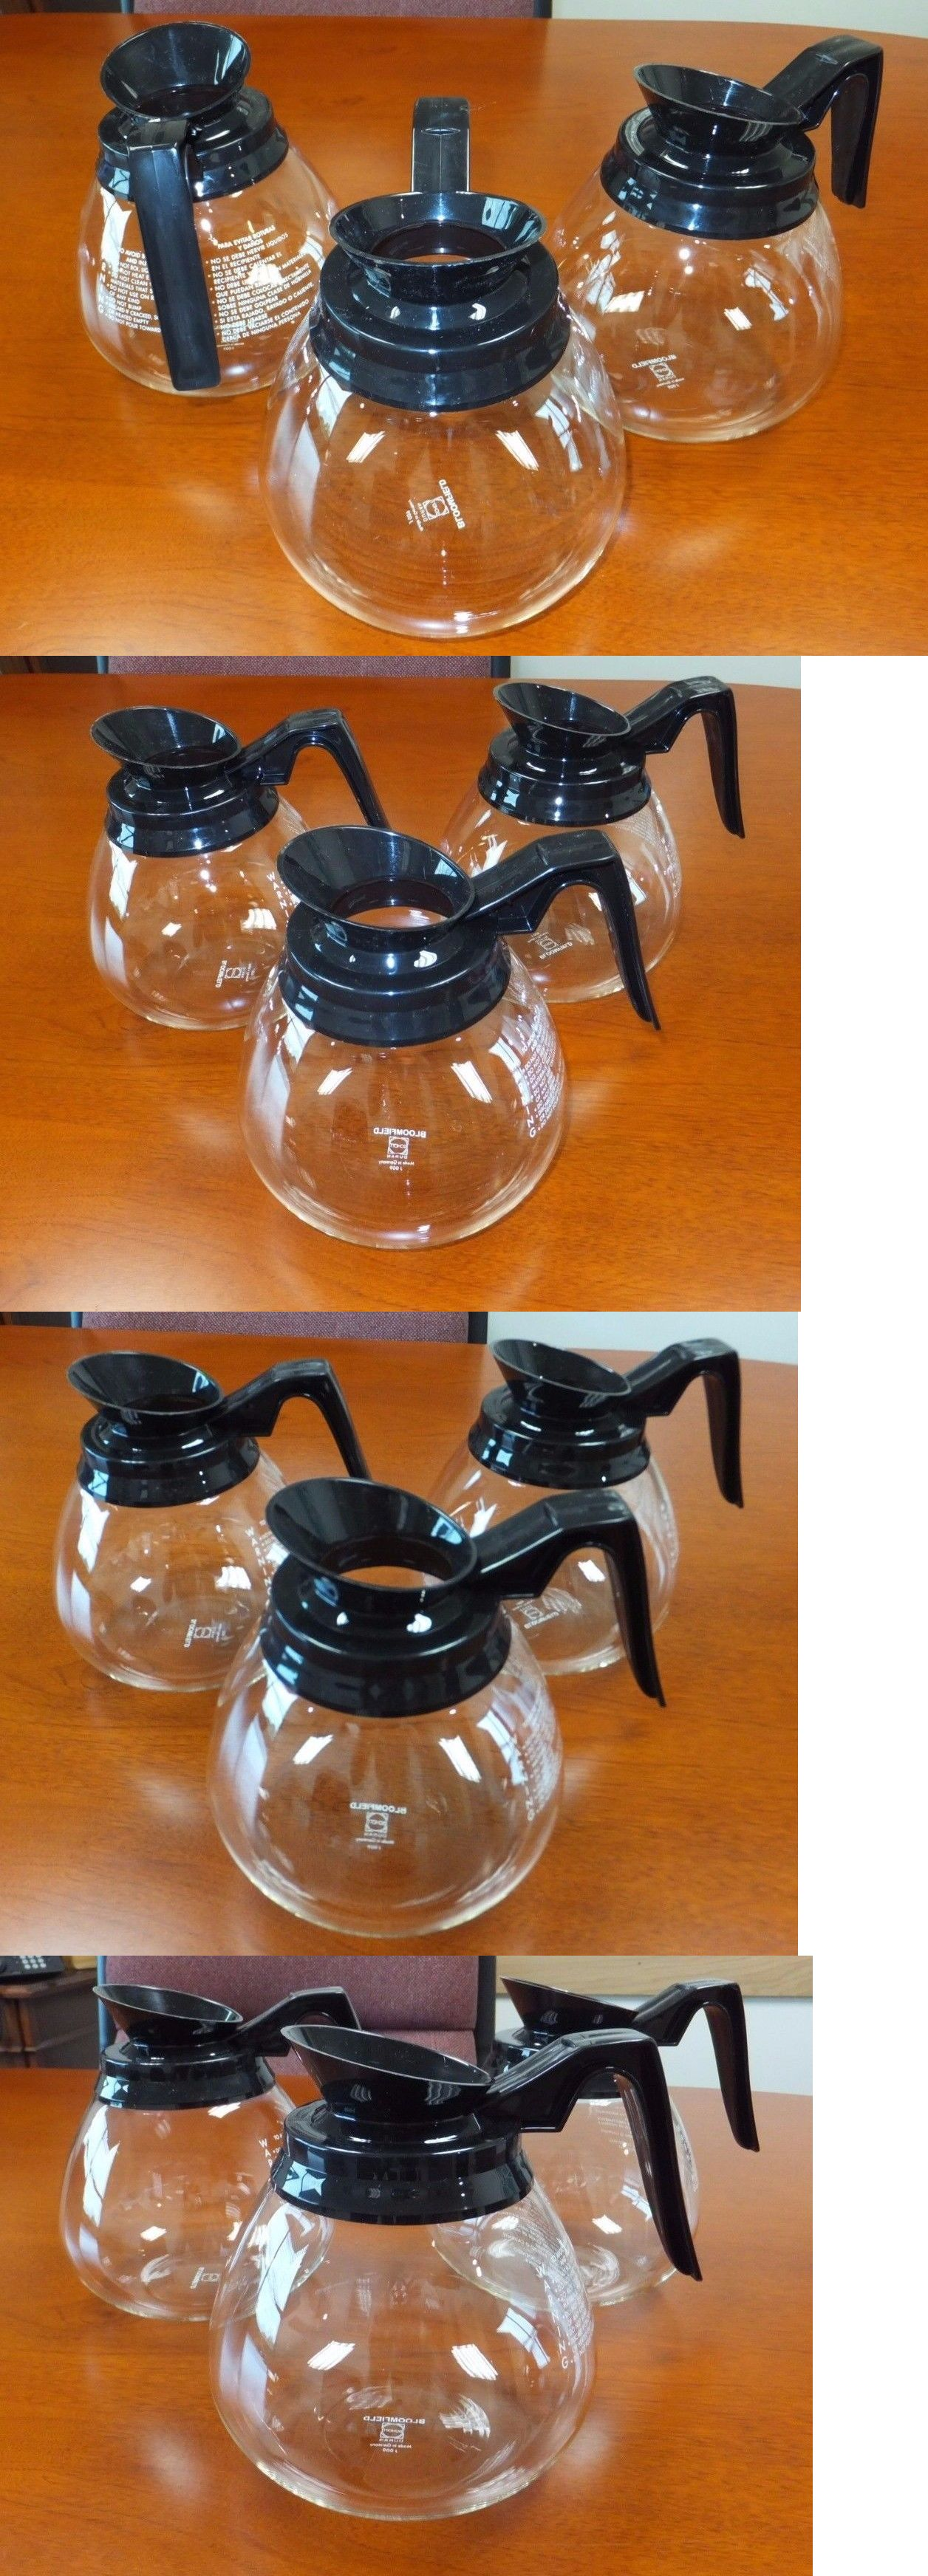 replacement parts and accs 99565 lot of 3 coffee pot decanter